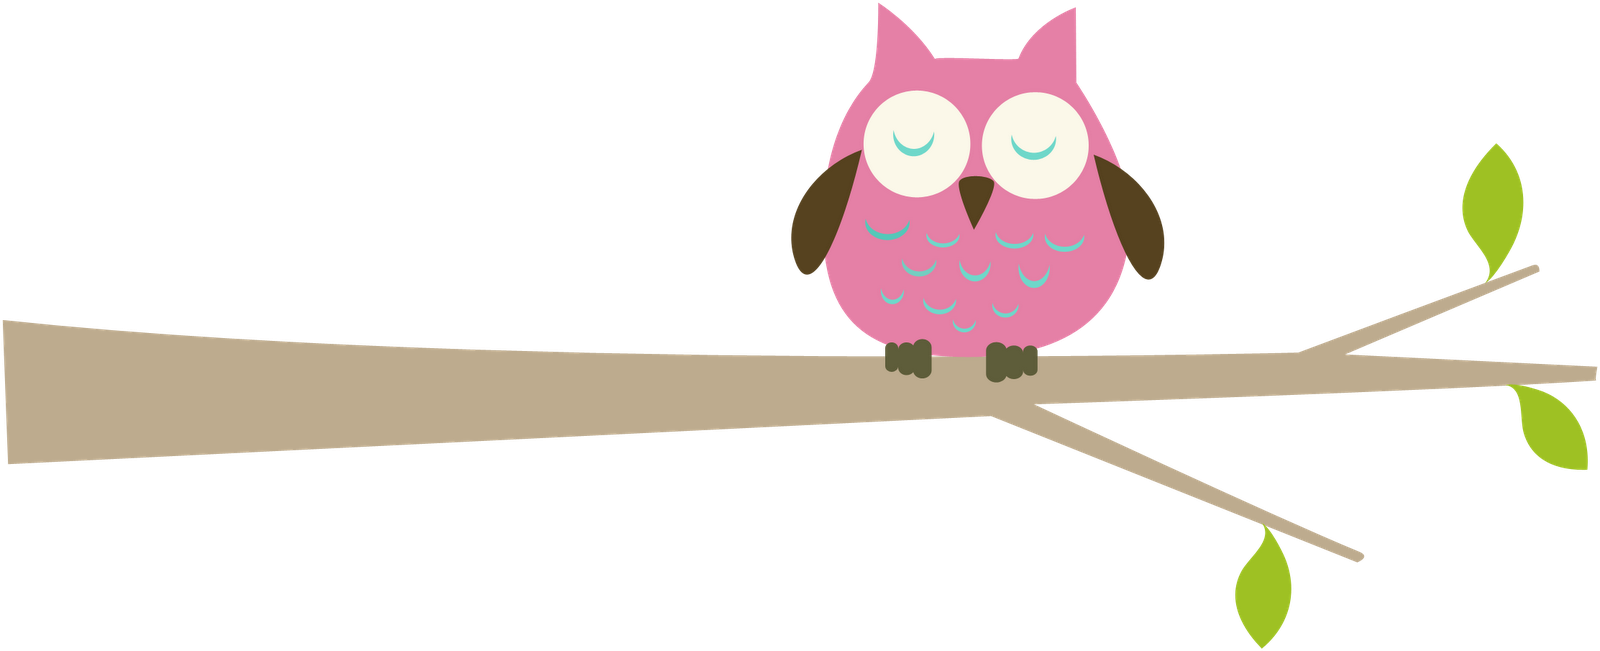 1600x651 Branch Clipart Pink Owl